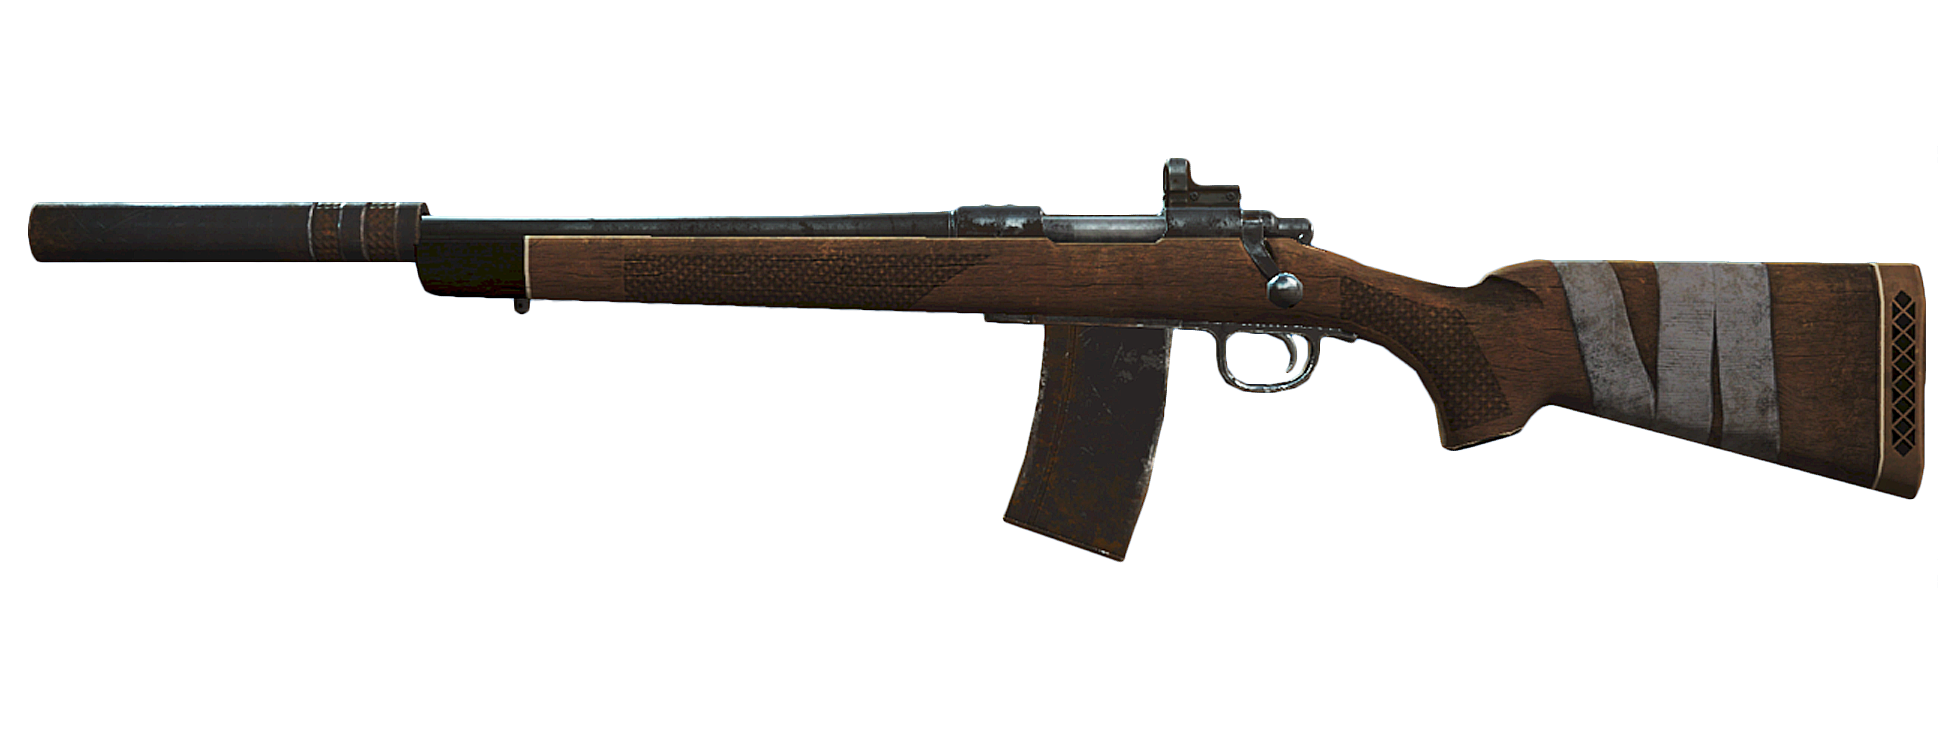 Image - FO4 Suppressed hunting rifle.png | Fallout Wiki | FANDOM powered by Wikia